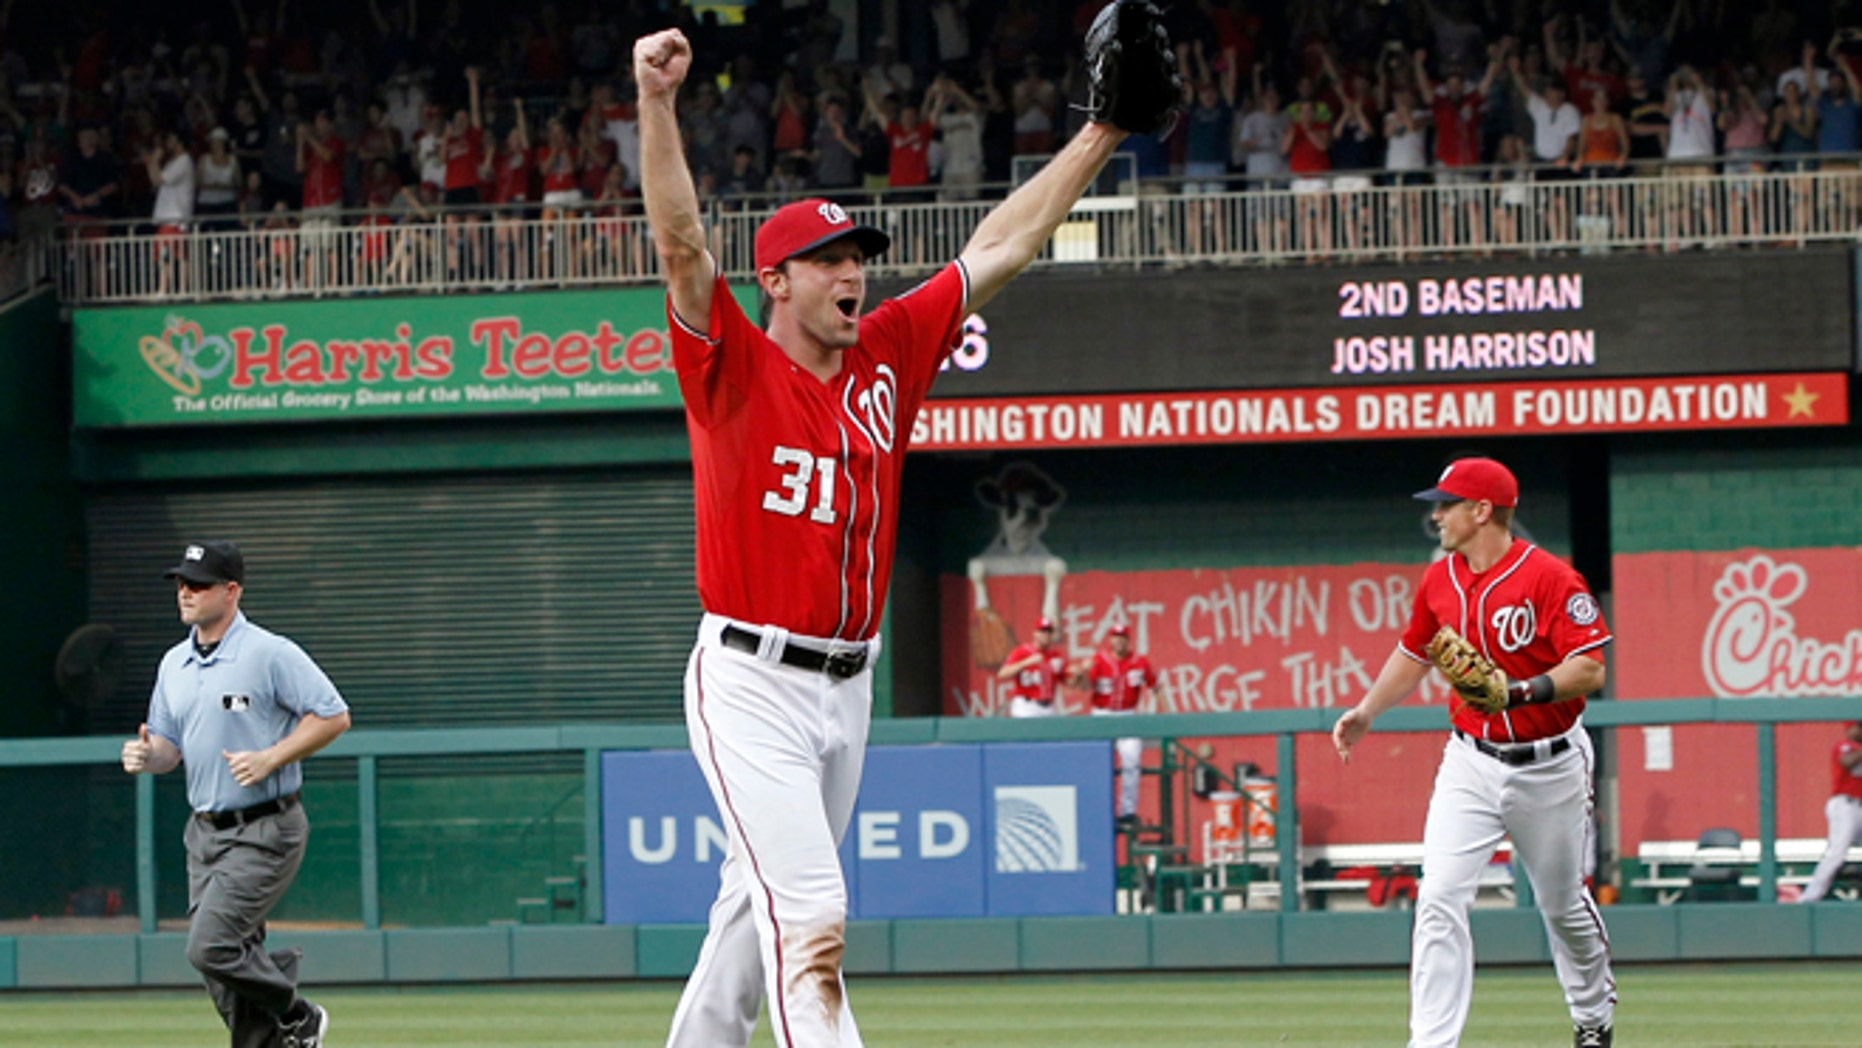 June 20, 2015: Washington Nationals starting pitcher Max Scherzer celebrates after his no-hitter baseball game against the Pittsburgh Pirates at Nationals Park in Washington. (AP)